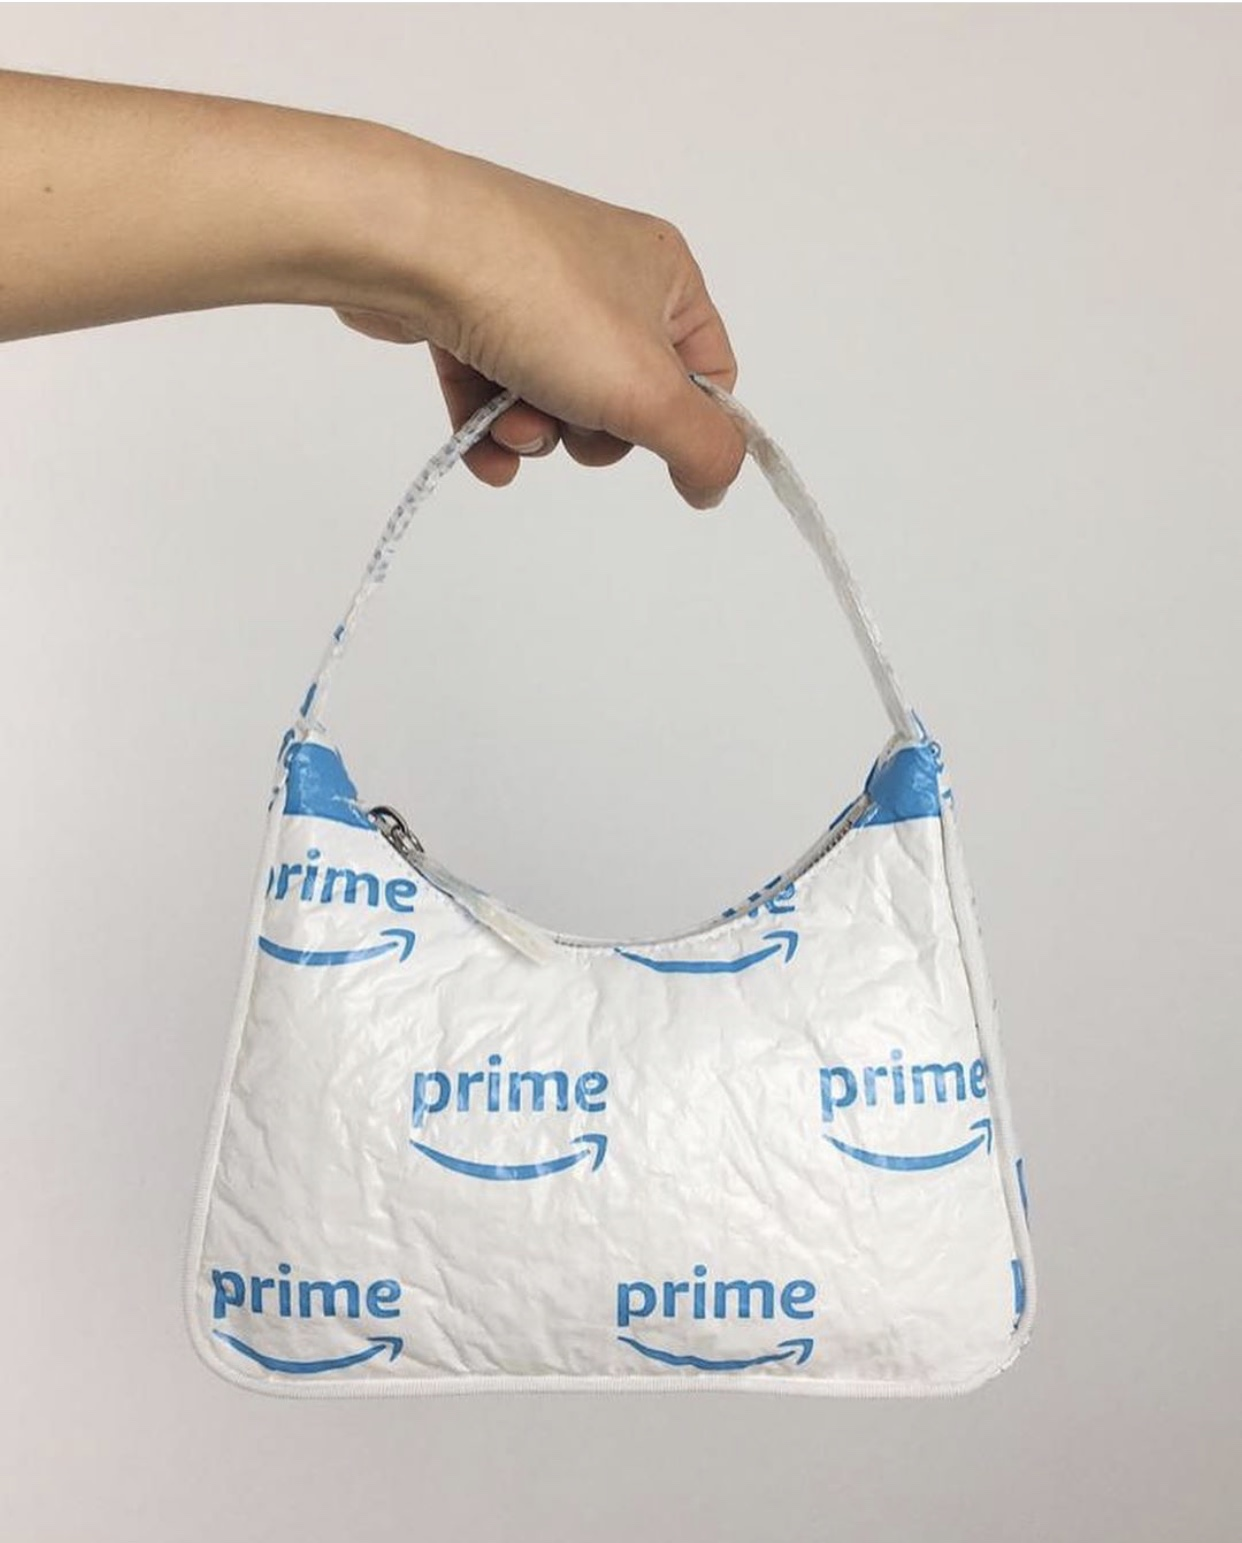 A remake of the prada bag using Amazon packaging